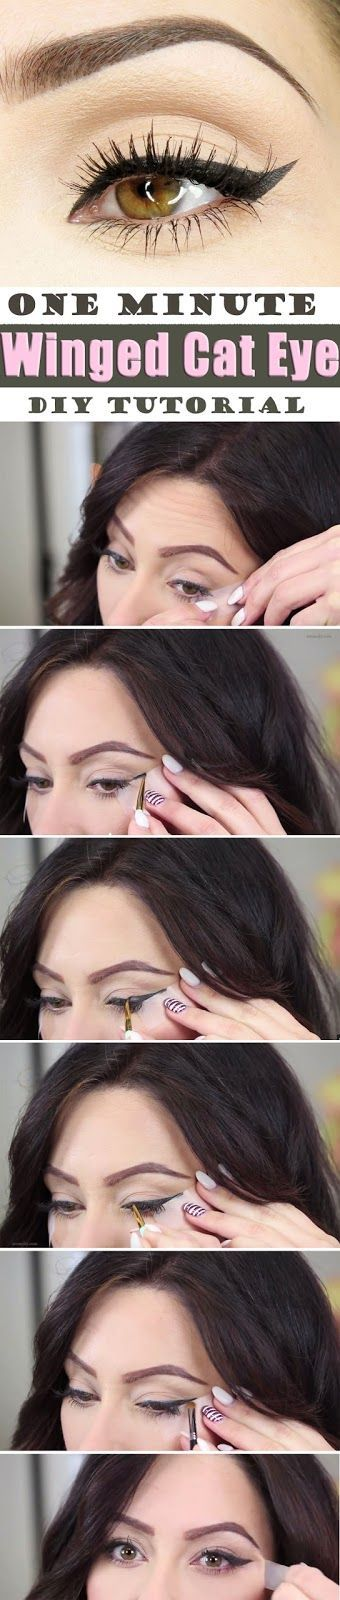 Brief Step by step Tutorial for Surprising One Minute Winged Cat Eye Makeup...  ...